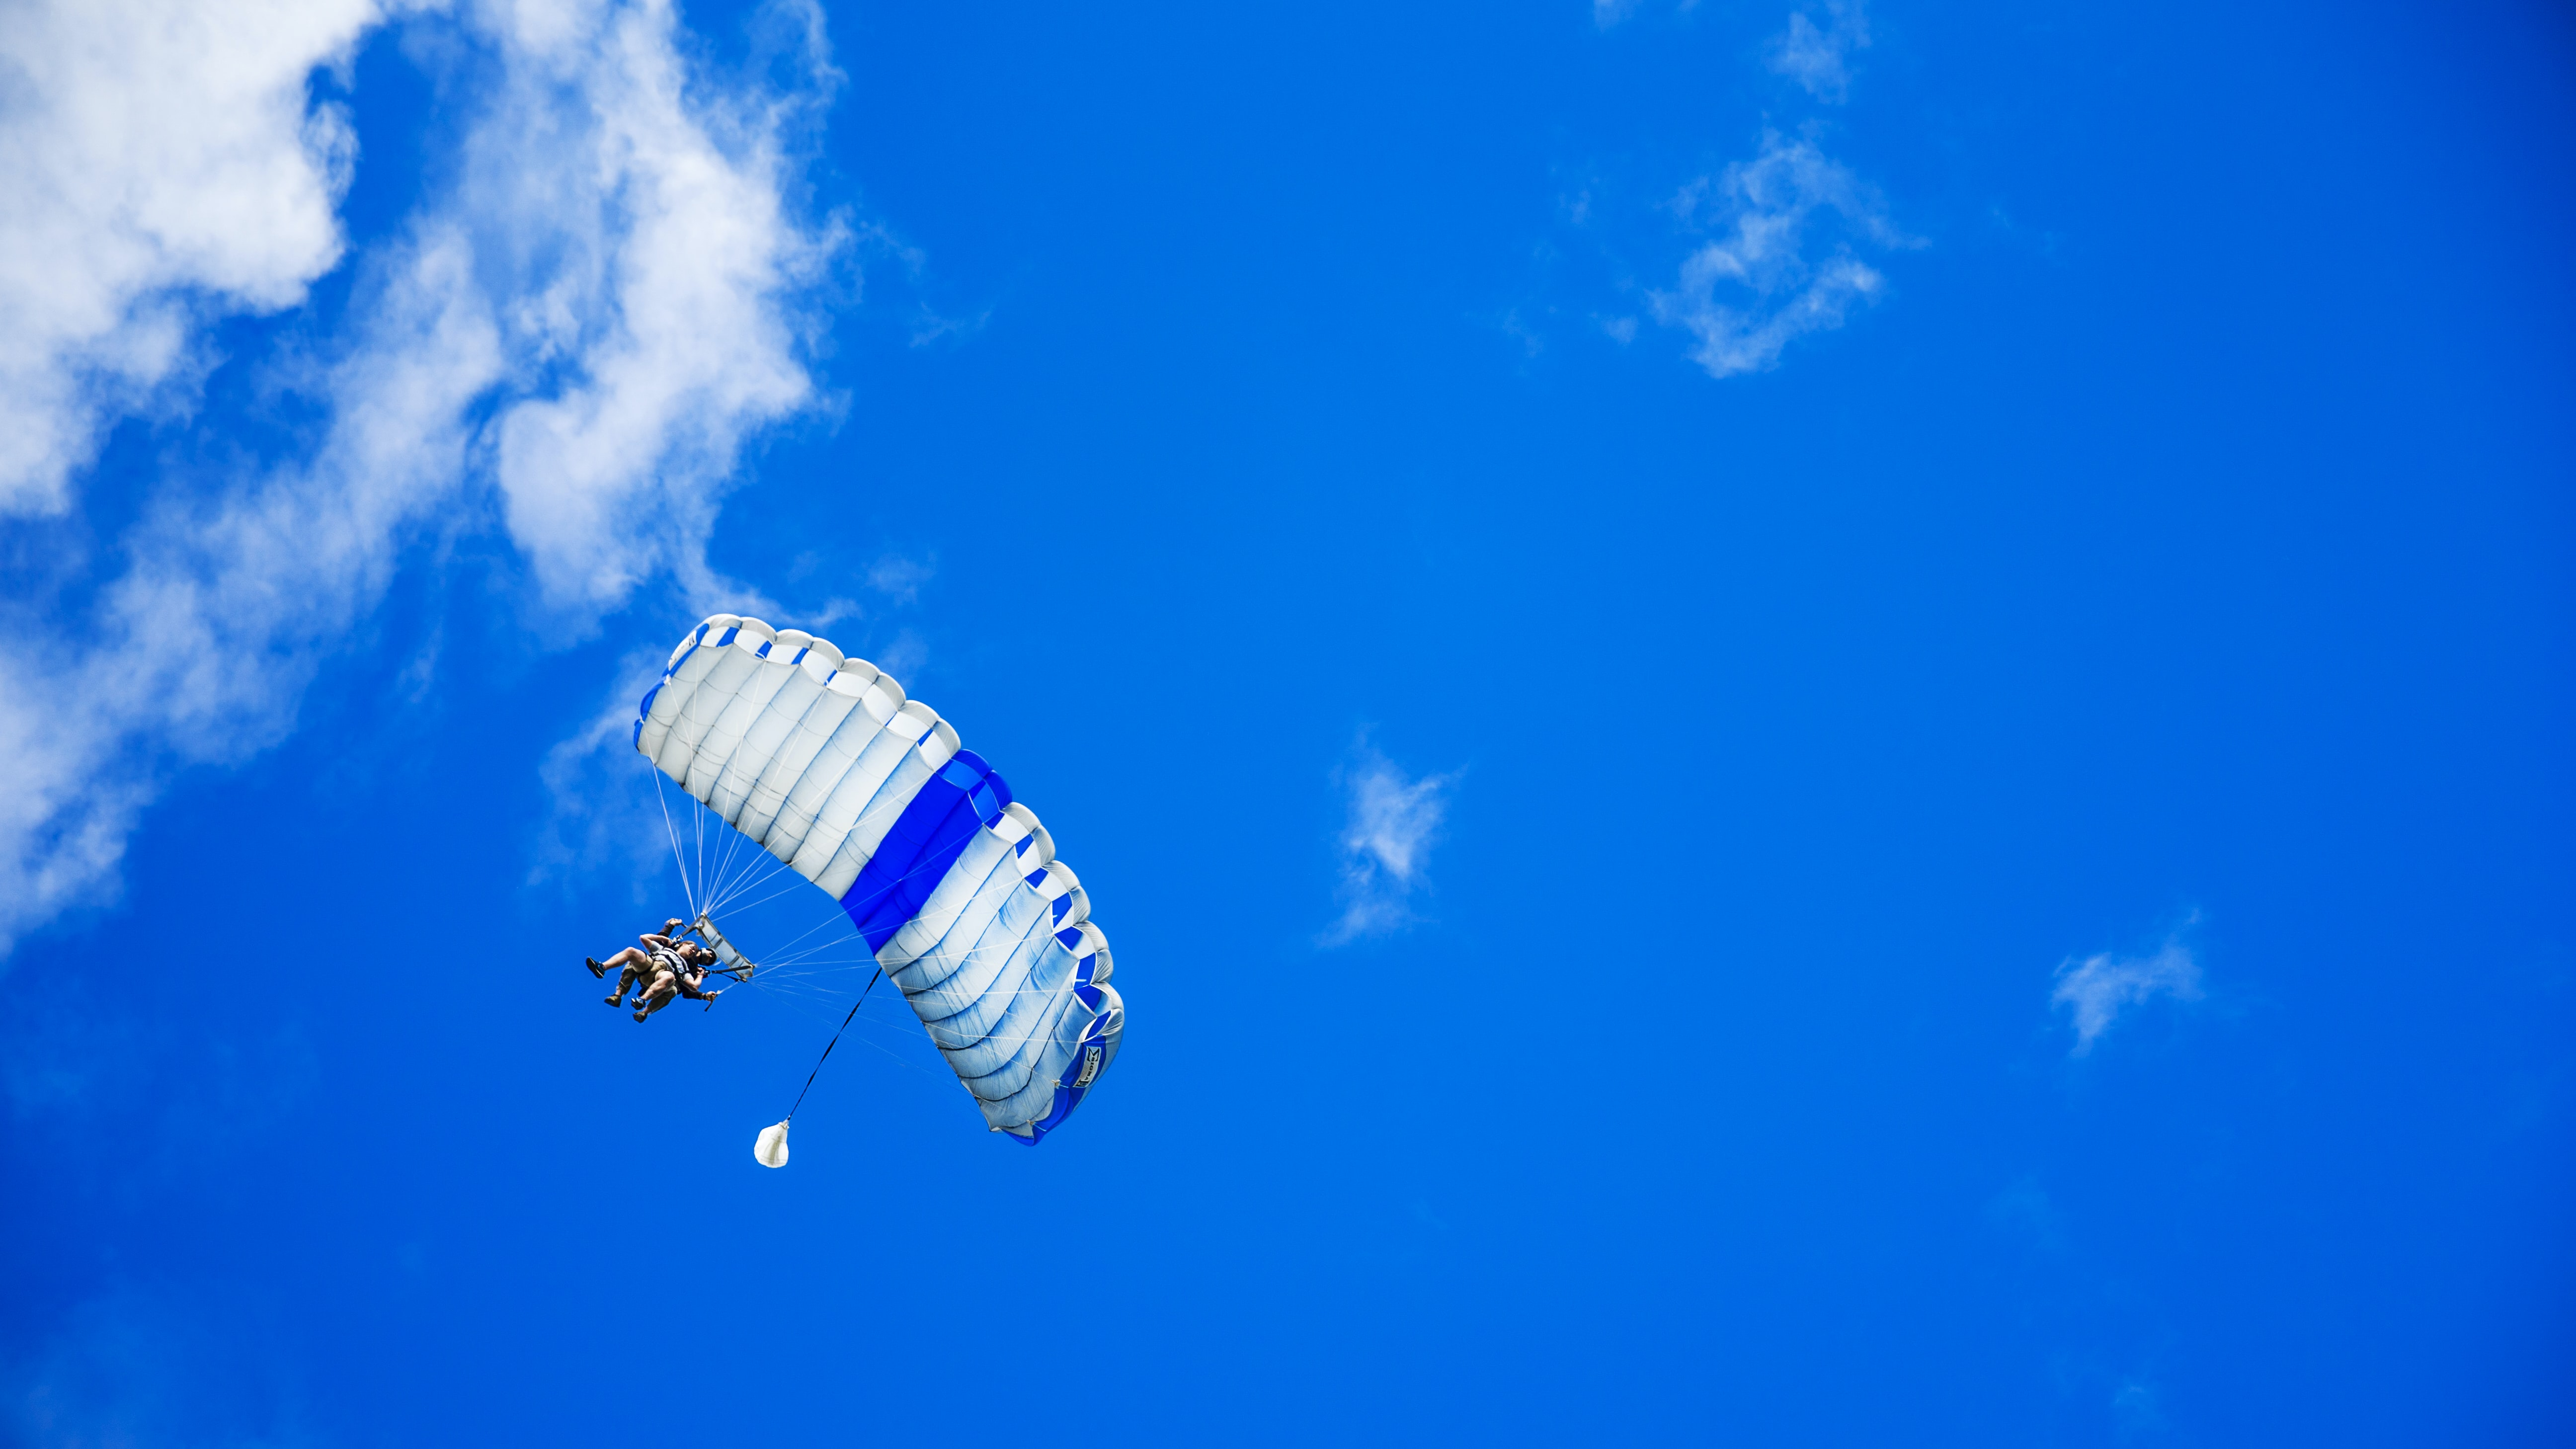 low-angle photography of person riding fan-powered chair with parachute up in sky